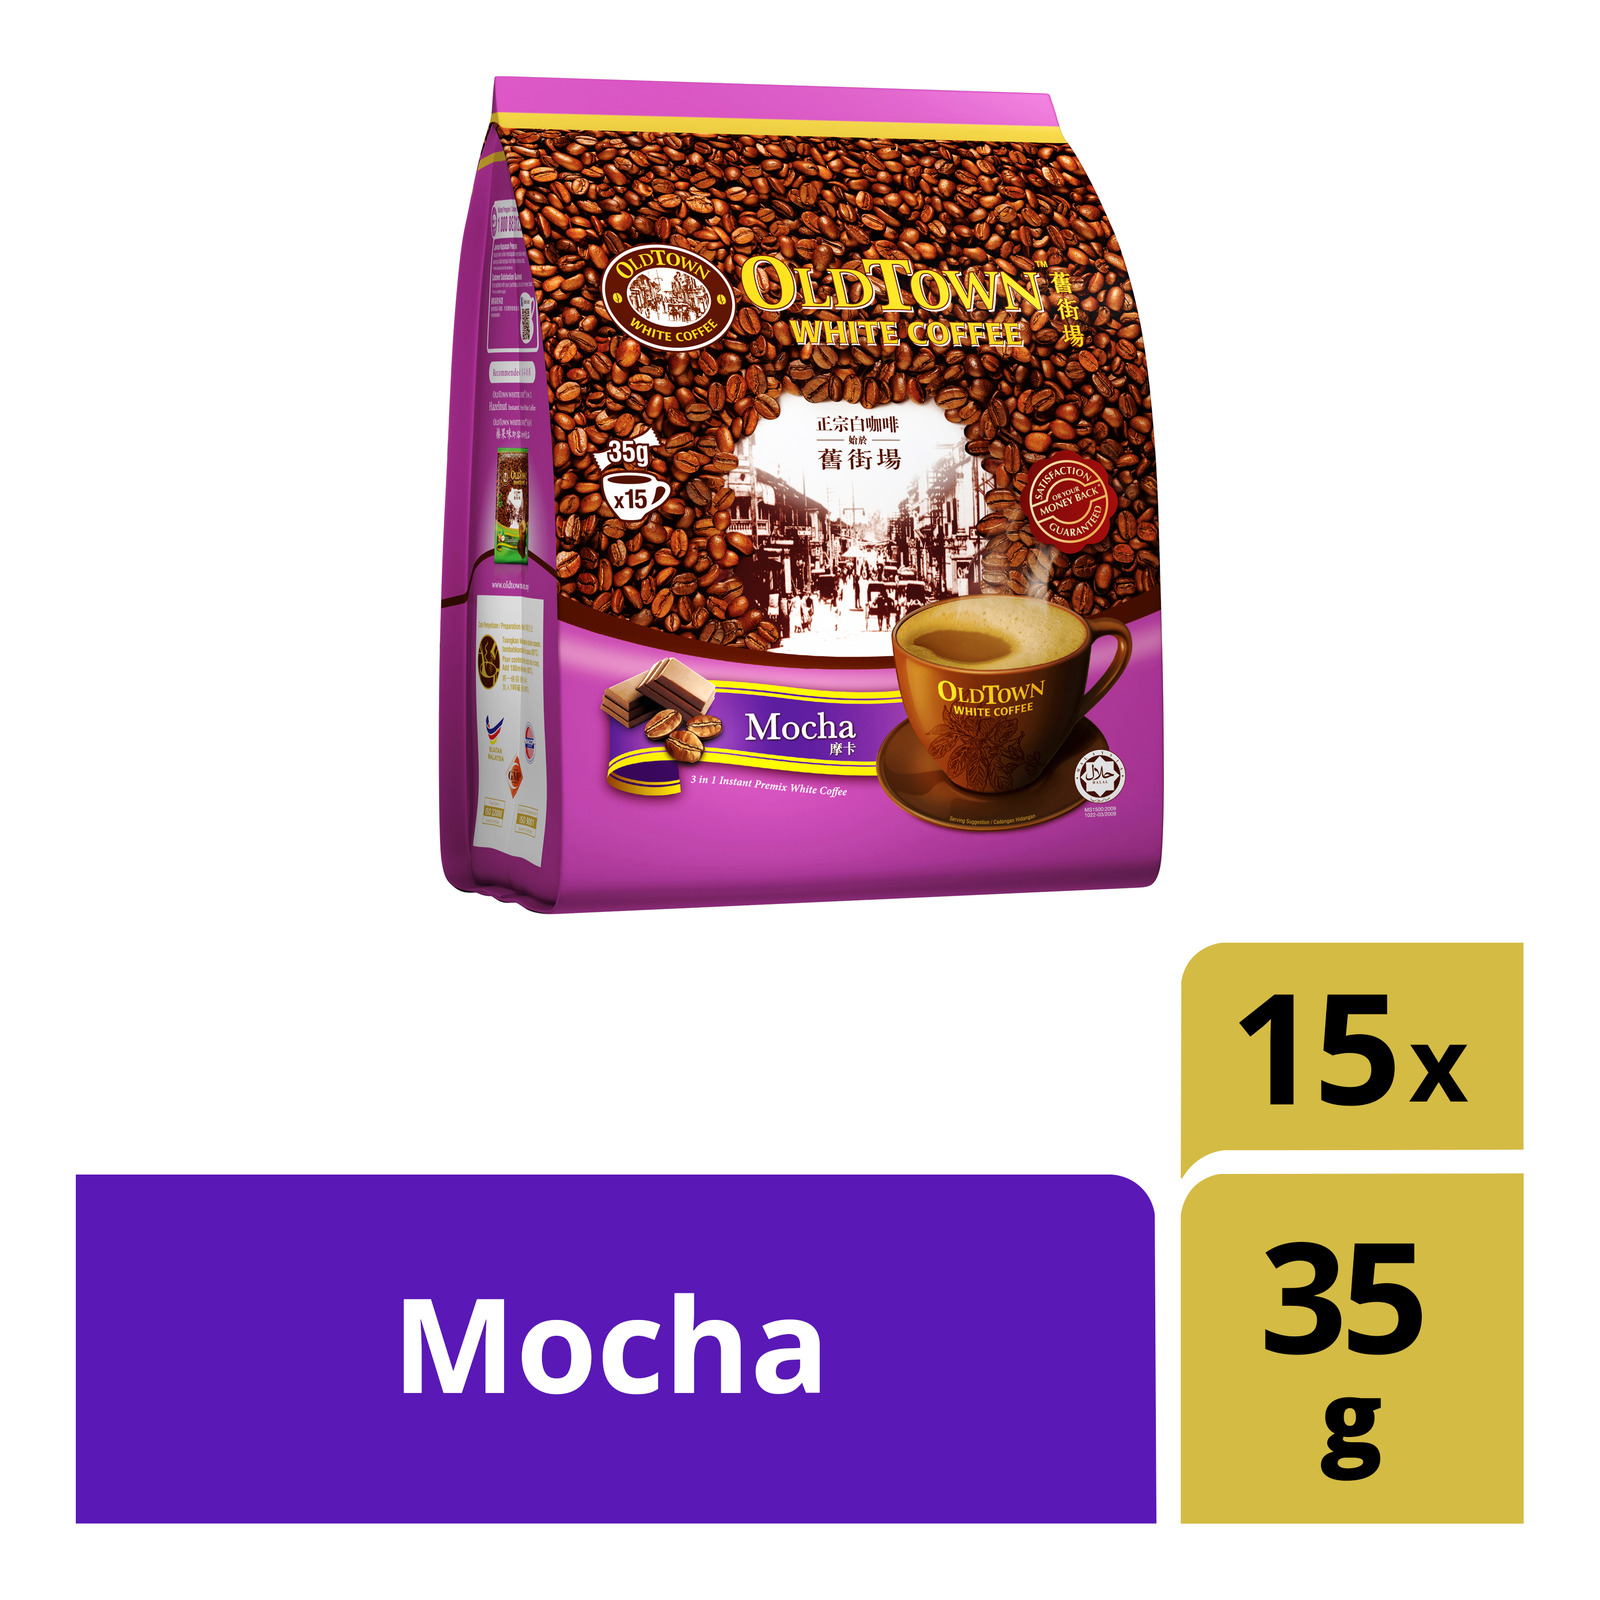 Old Town 3 in 1 Instant White Coffee - Mocha